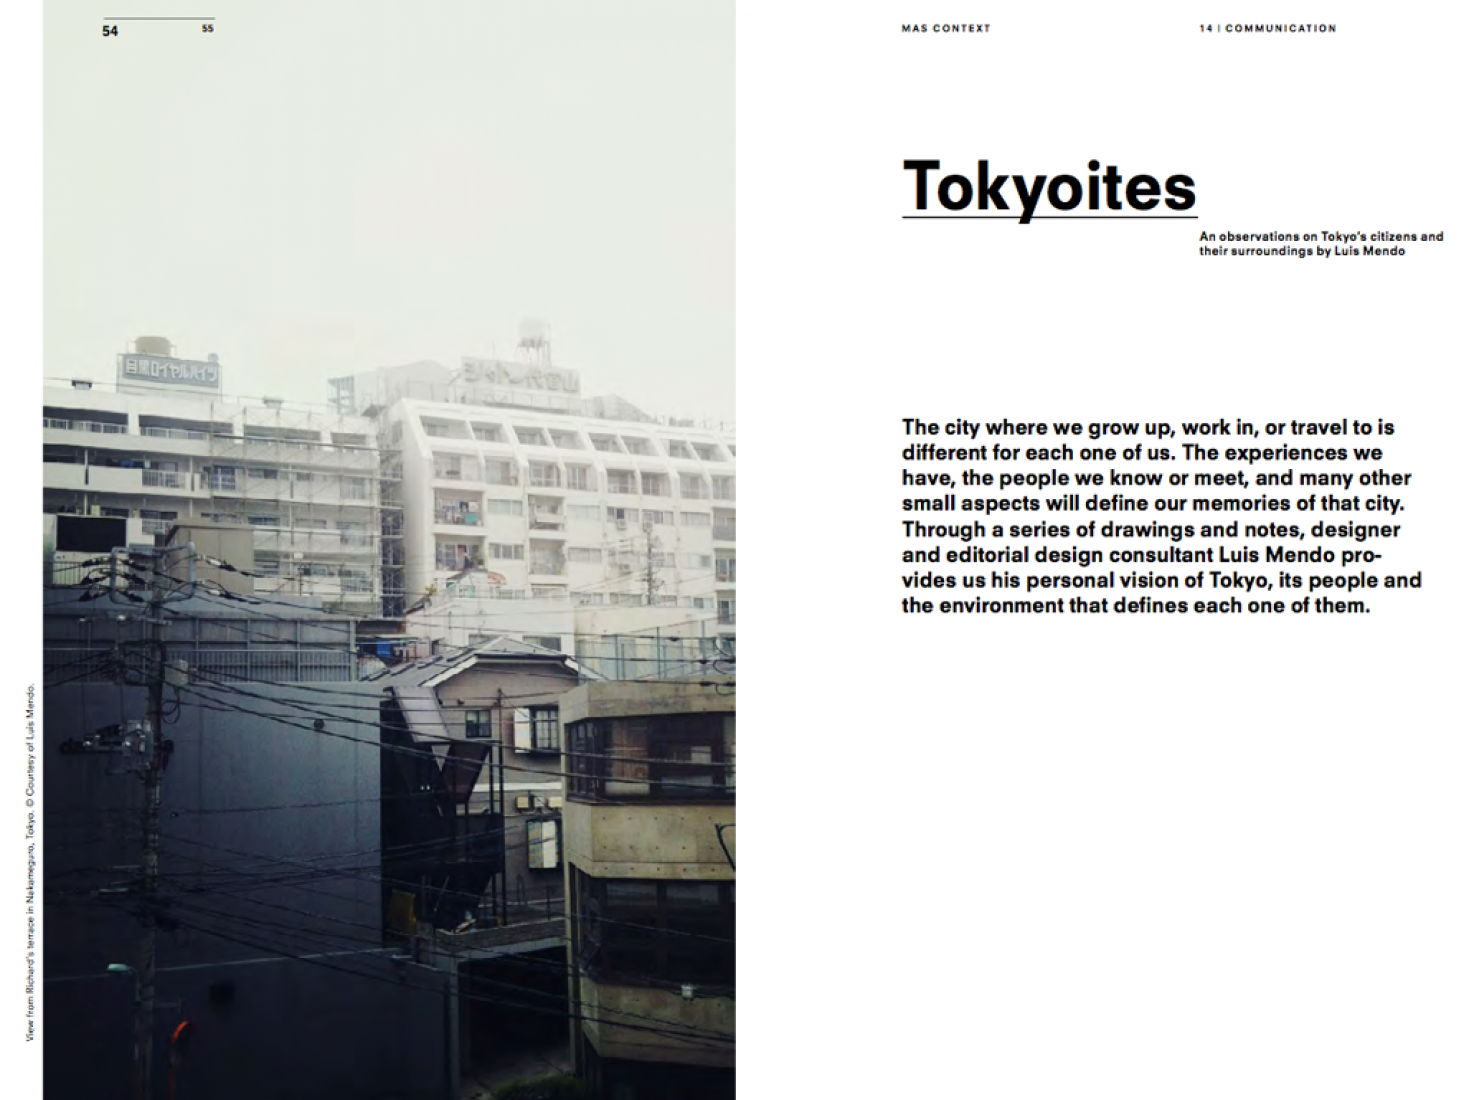 Tokyoites. Page from MAS Context 14.